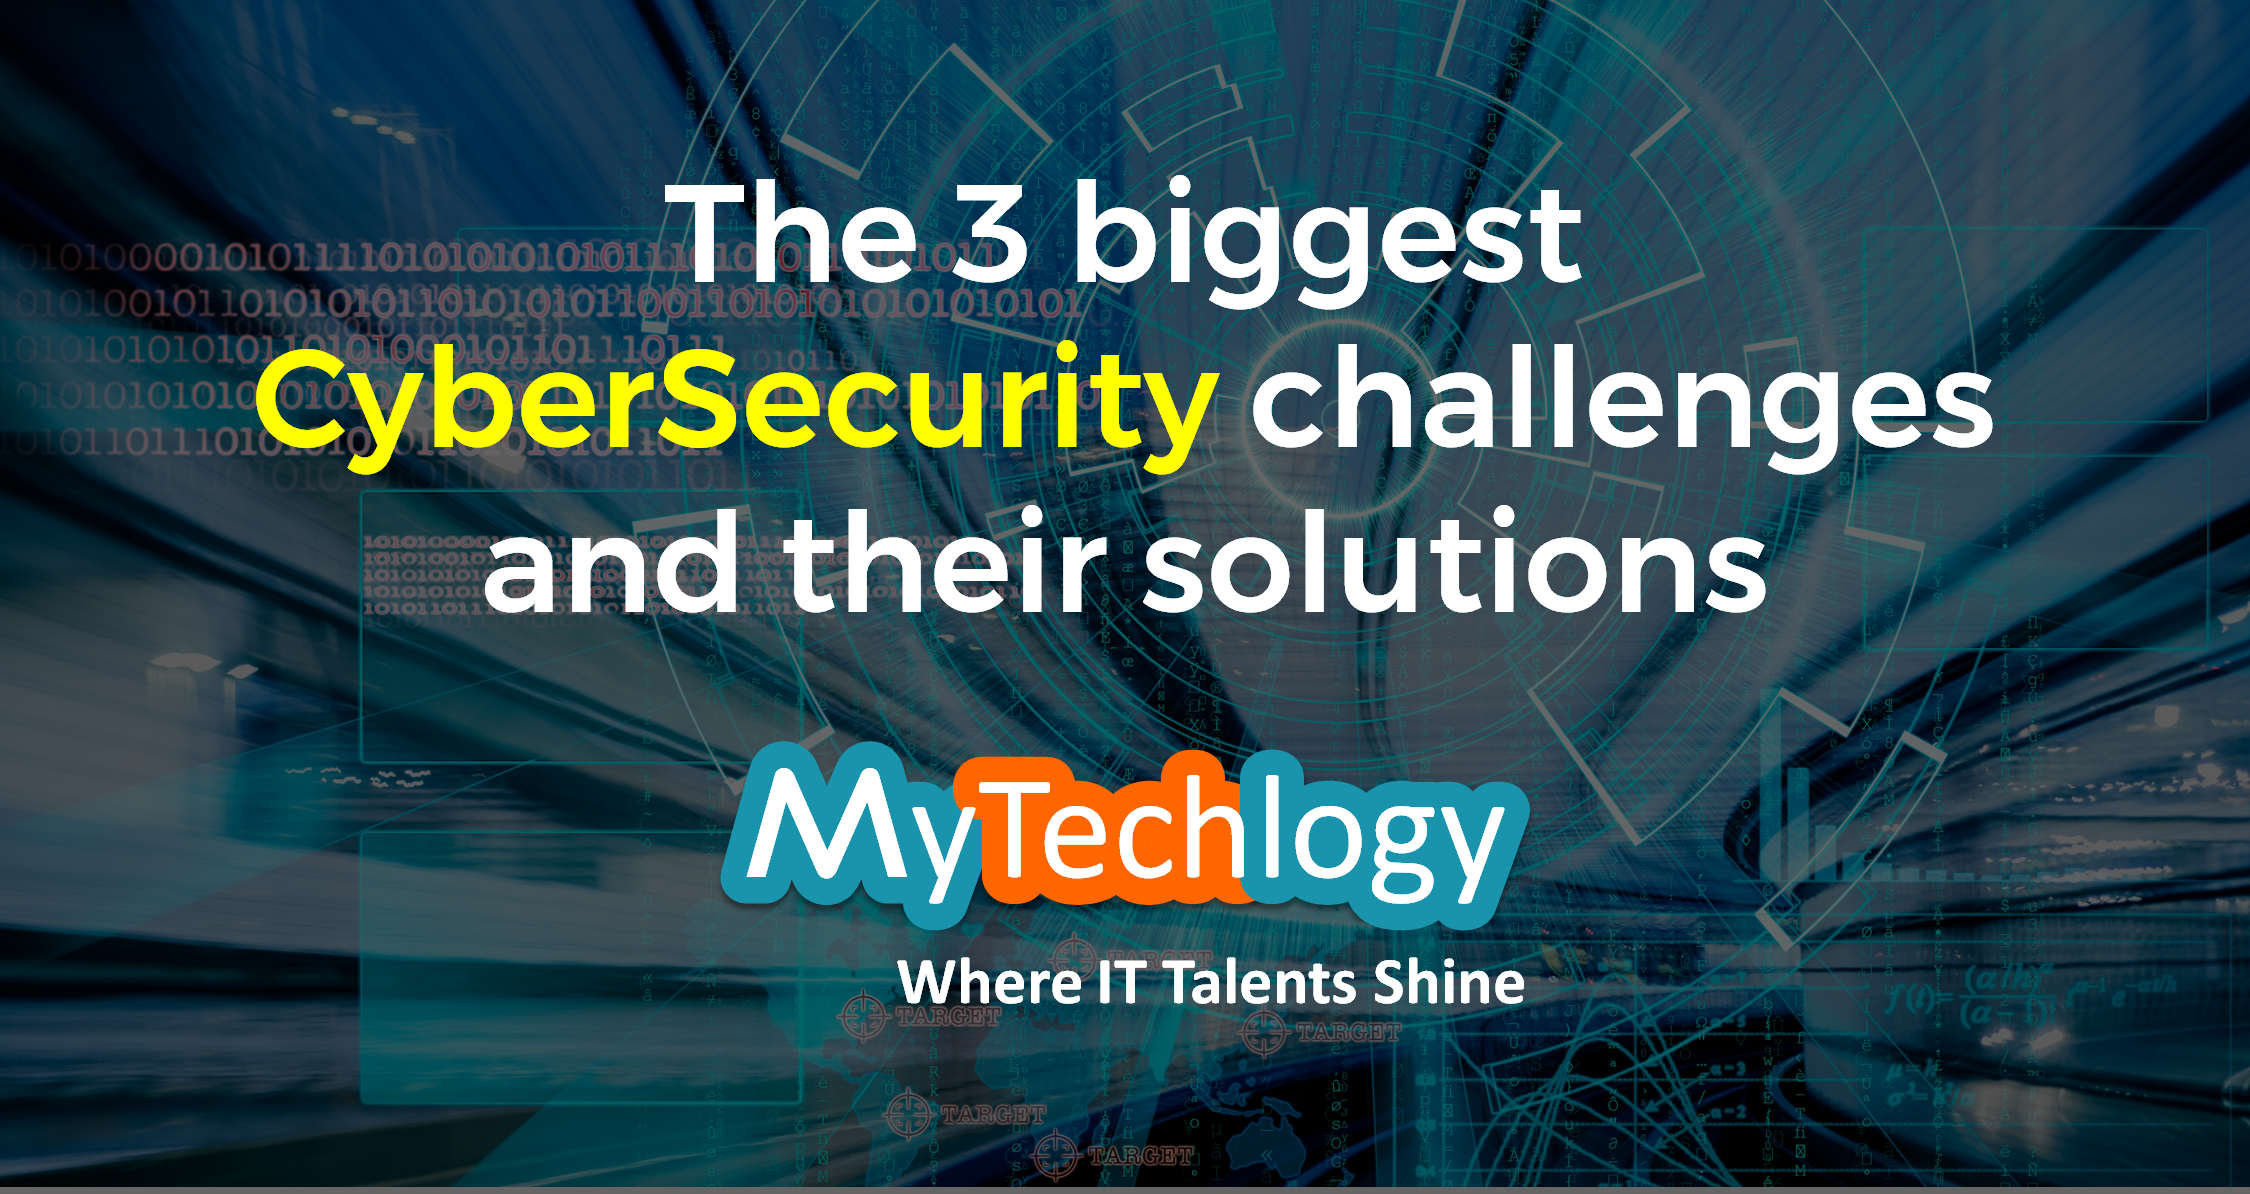 4 solutions to the 3 biggest CyberSecurity challenges - Image 1